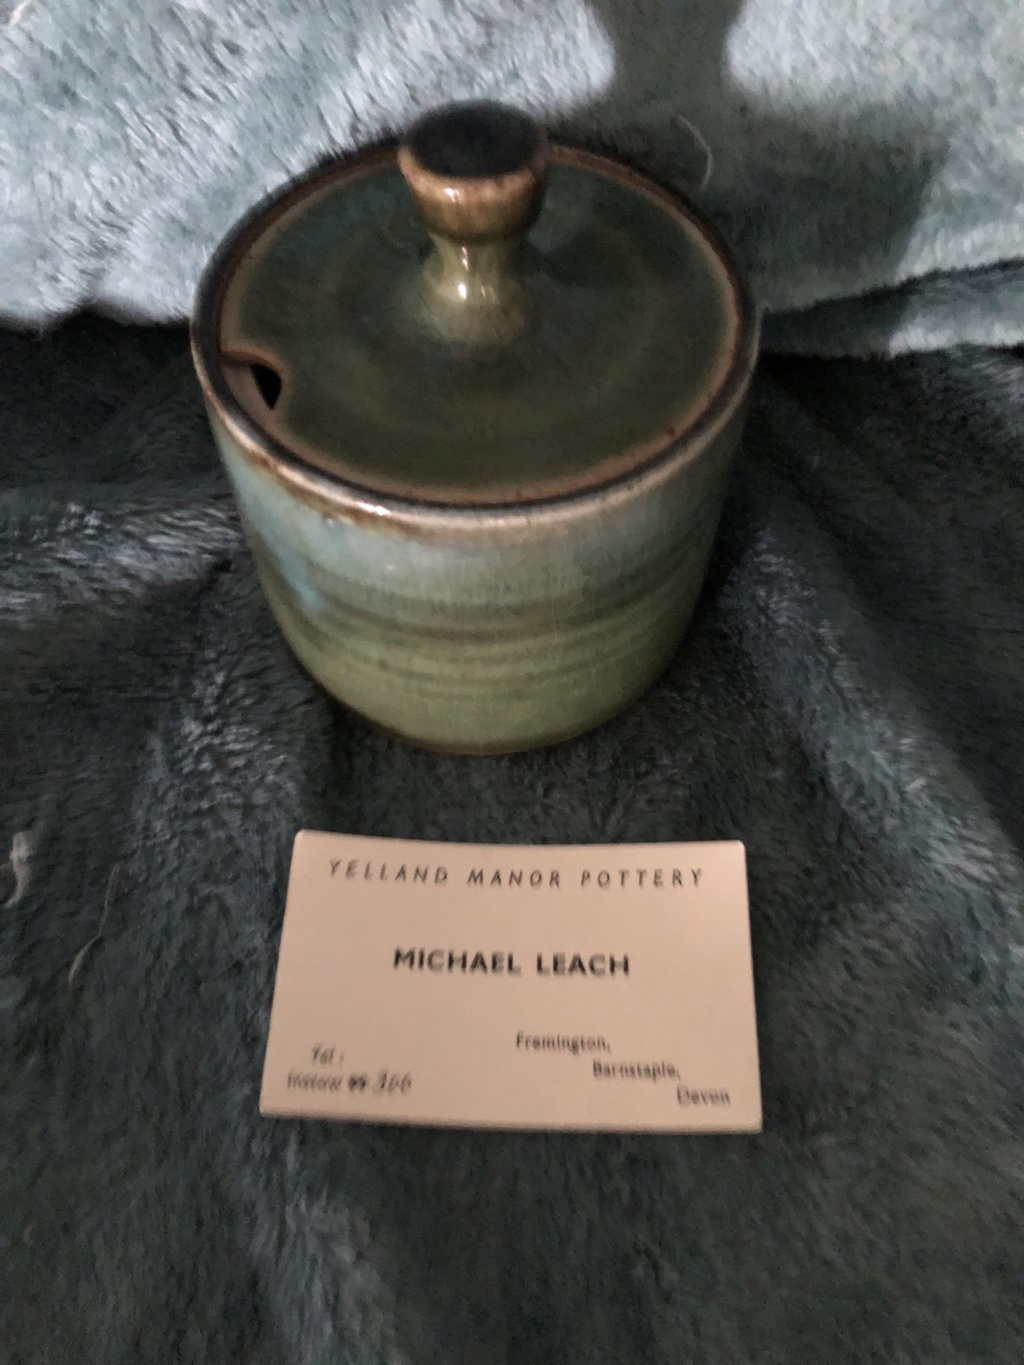 Just wondered the age of this lovely Michael Leach Lidded pot 8fe56a10